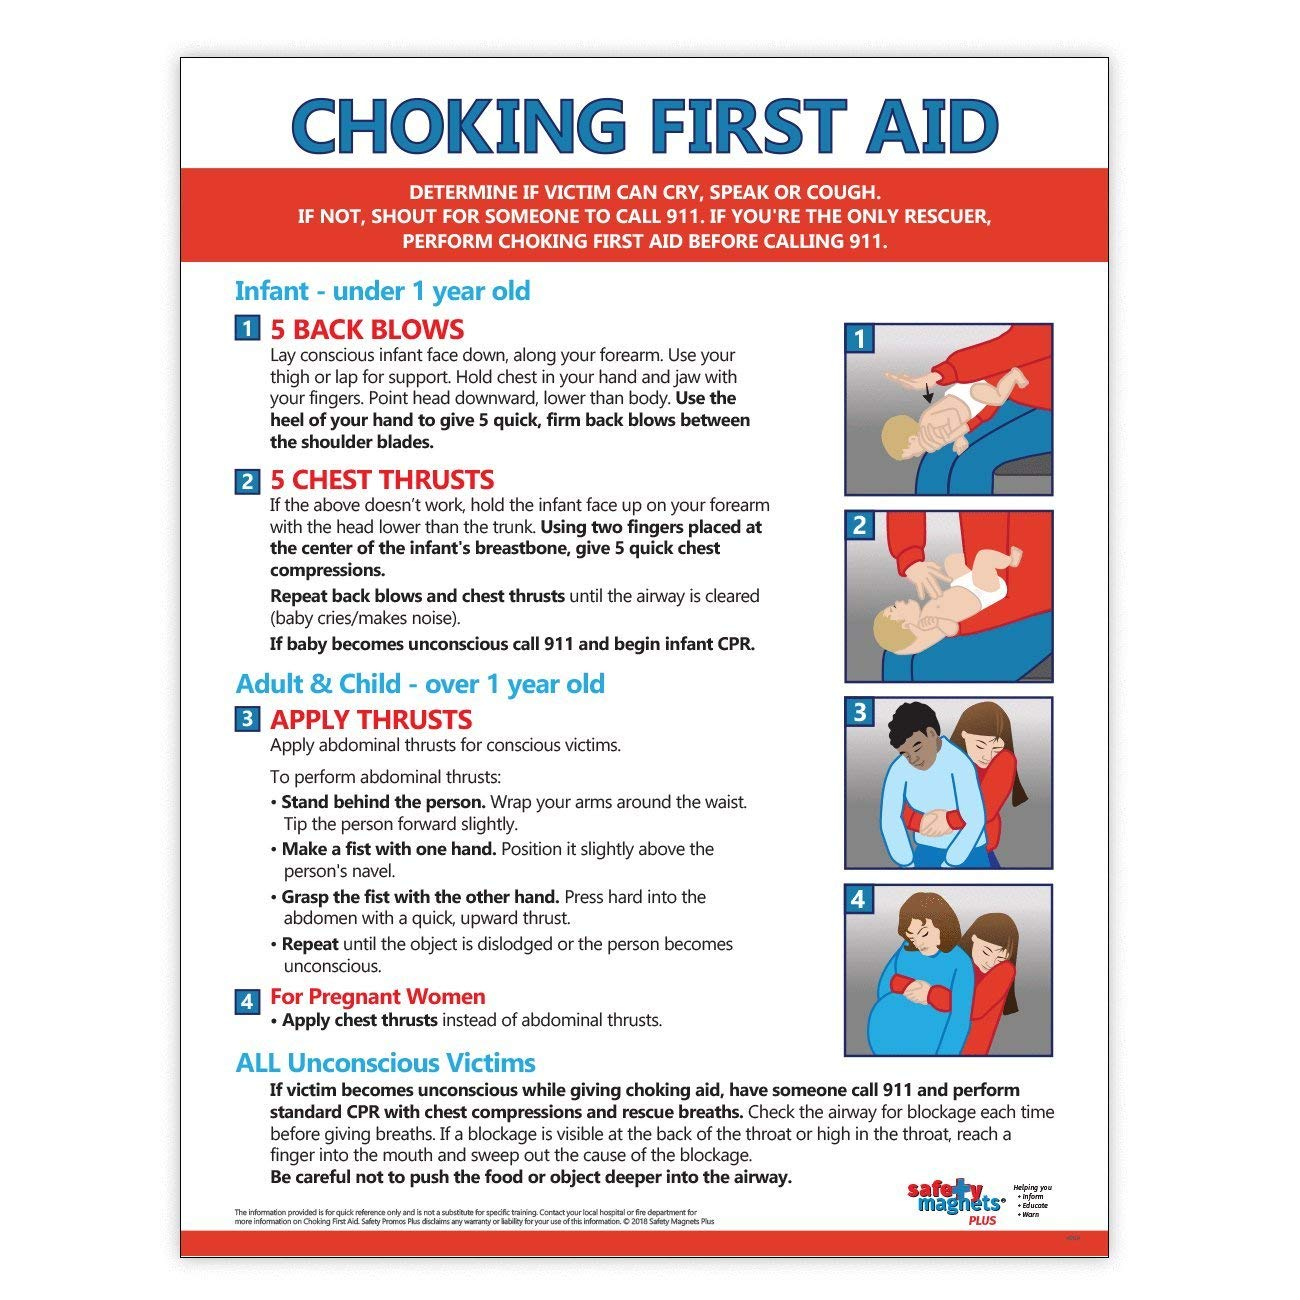 photograph regarding Free Printable Choking Poster referred to as Low-cost Small children Choking, identify Young children Choking specials upon line